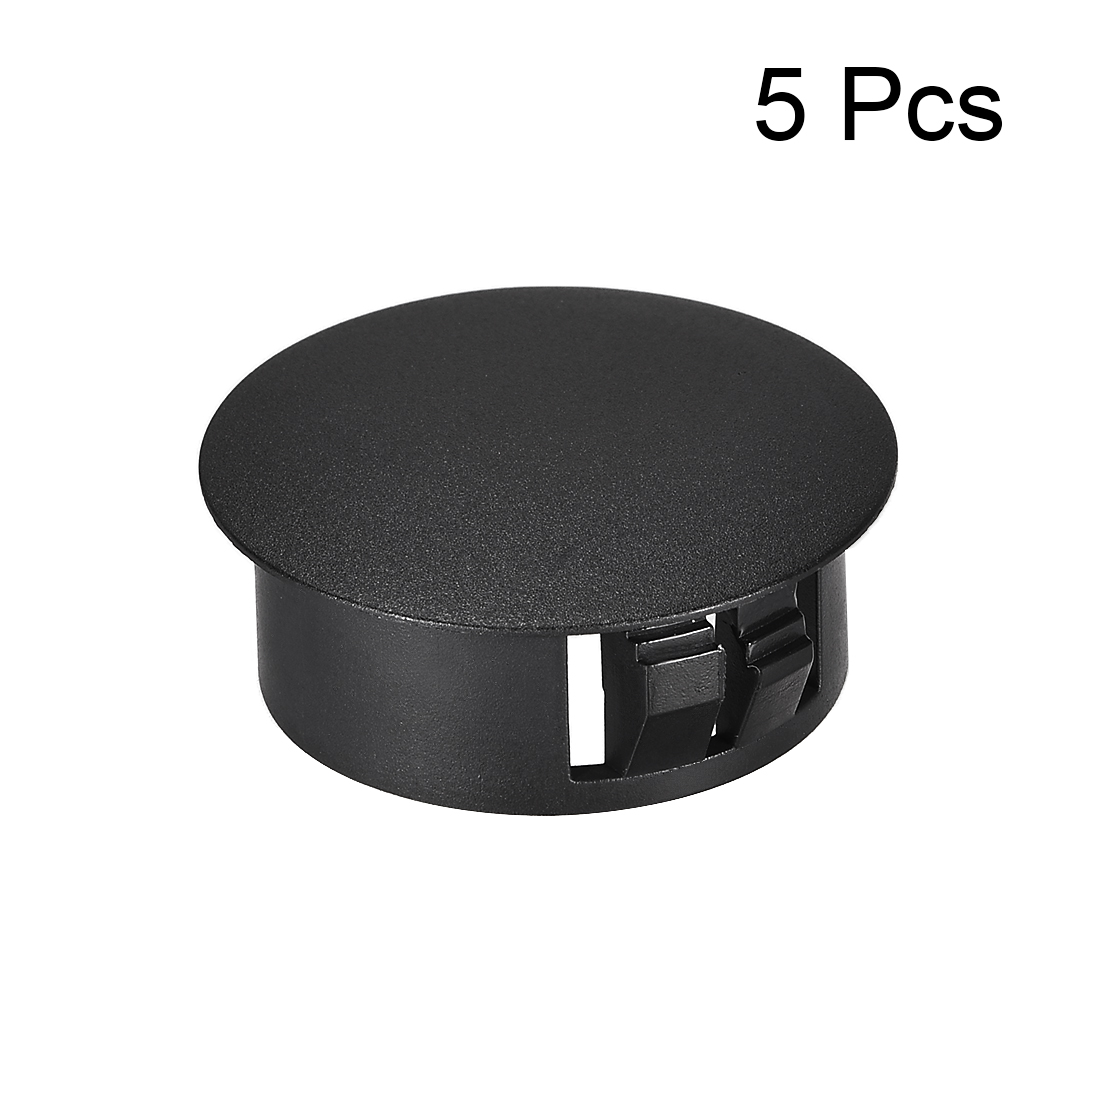 Uxcell 5pcs 25mm X 11mm Mounting Black Nylon Round Snap Panel Locking Hole Plugs Cover